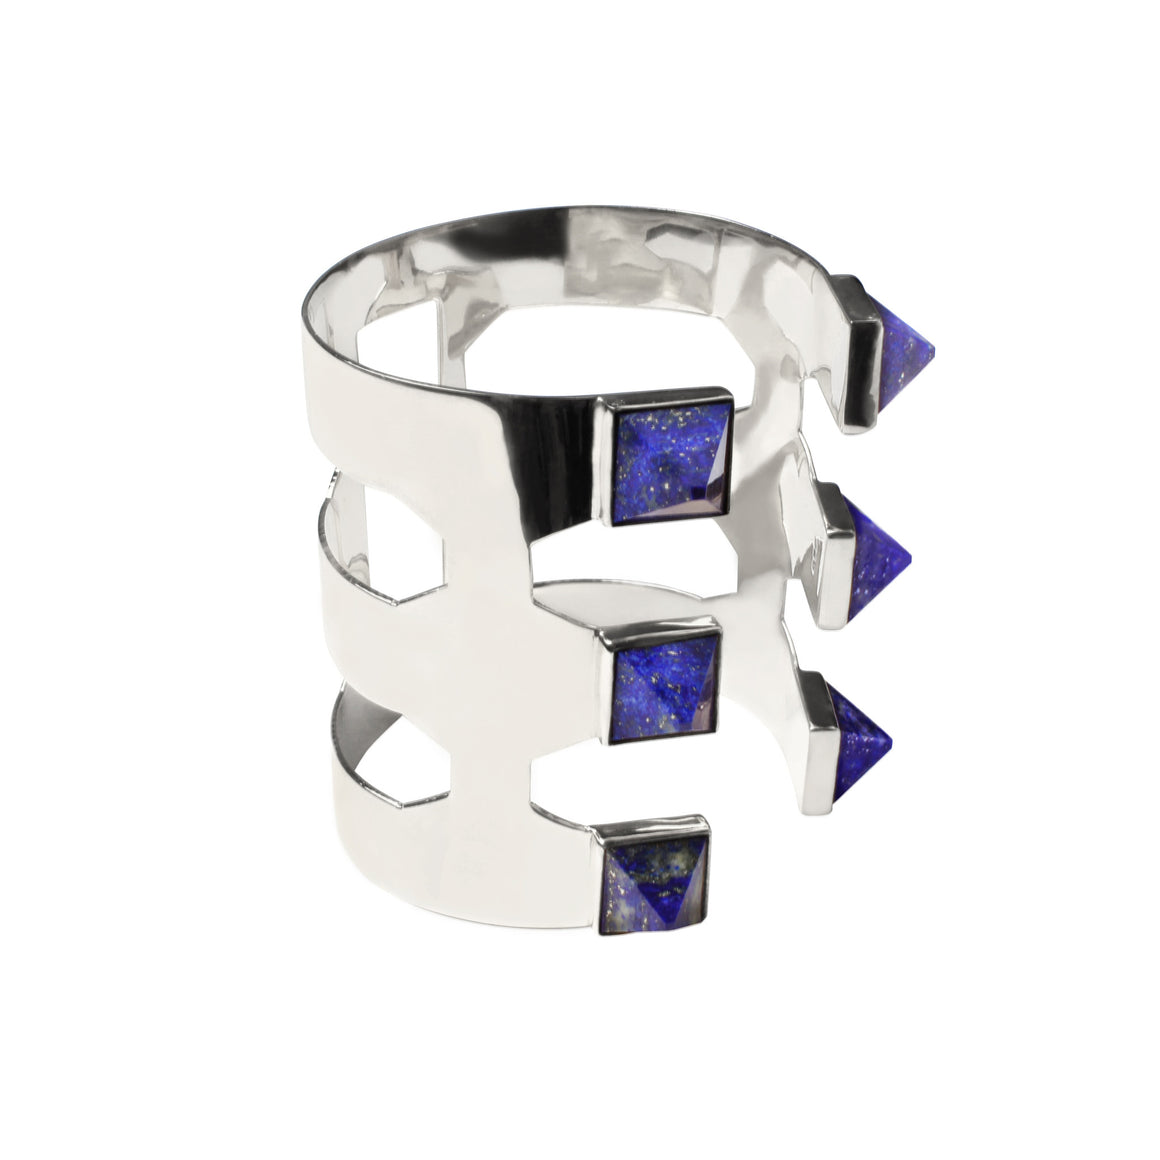 PYRAMID ADJUSTABLE CUFF WITH LAPIS STONE IN 925 STERLING SILVER